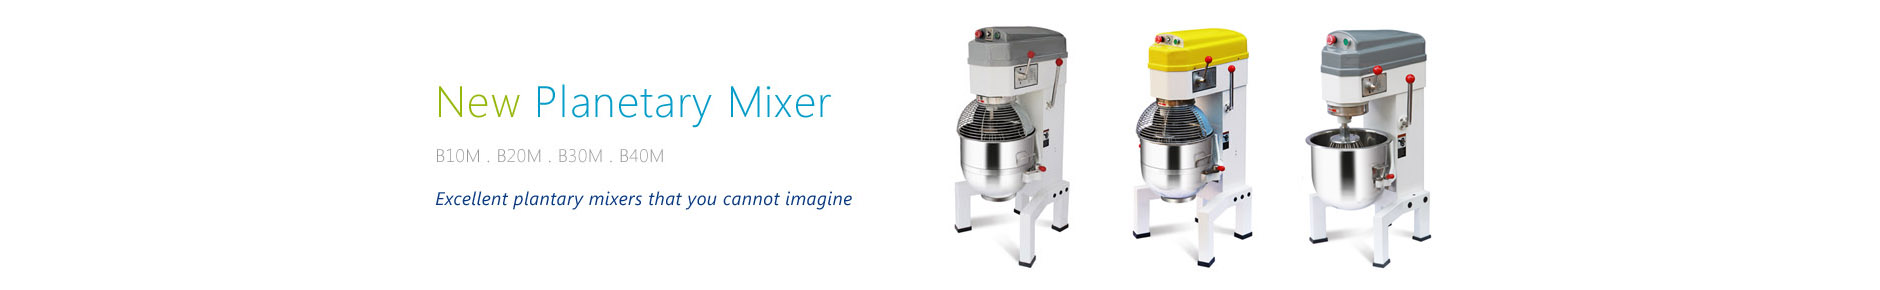 New Planetary Mixer M Series